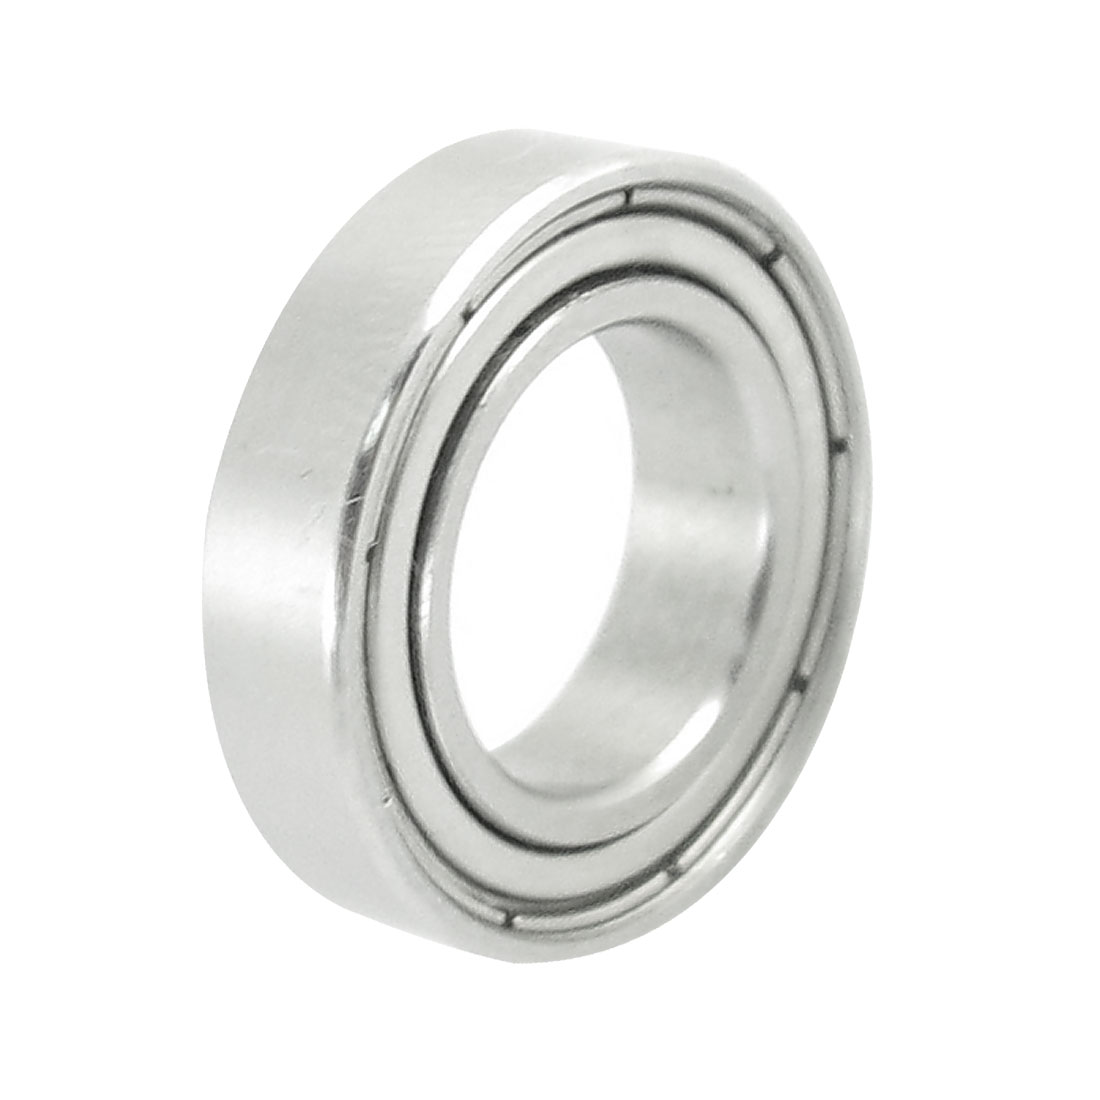 Stainless Steel 21mm x 12mm x 5mm Sealed Deep Groove Ball Bearing